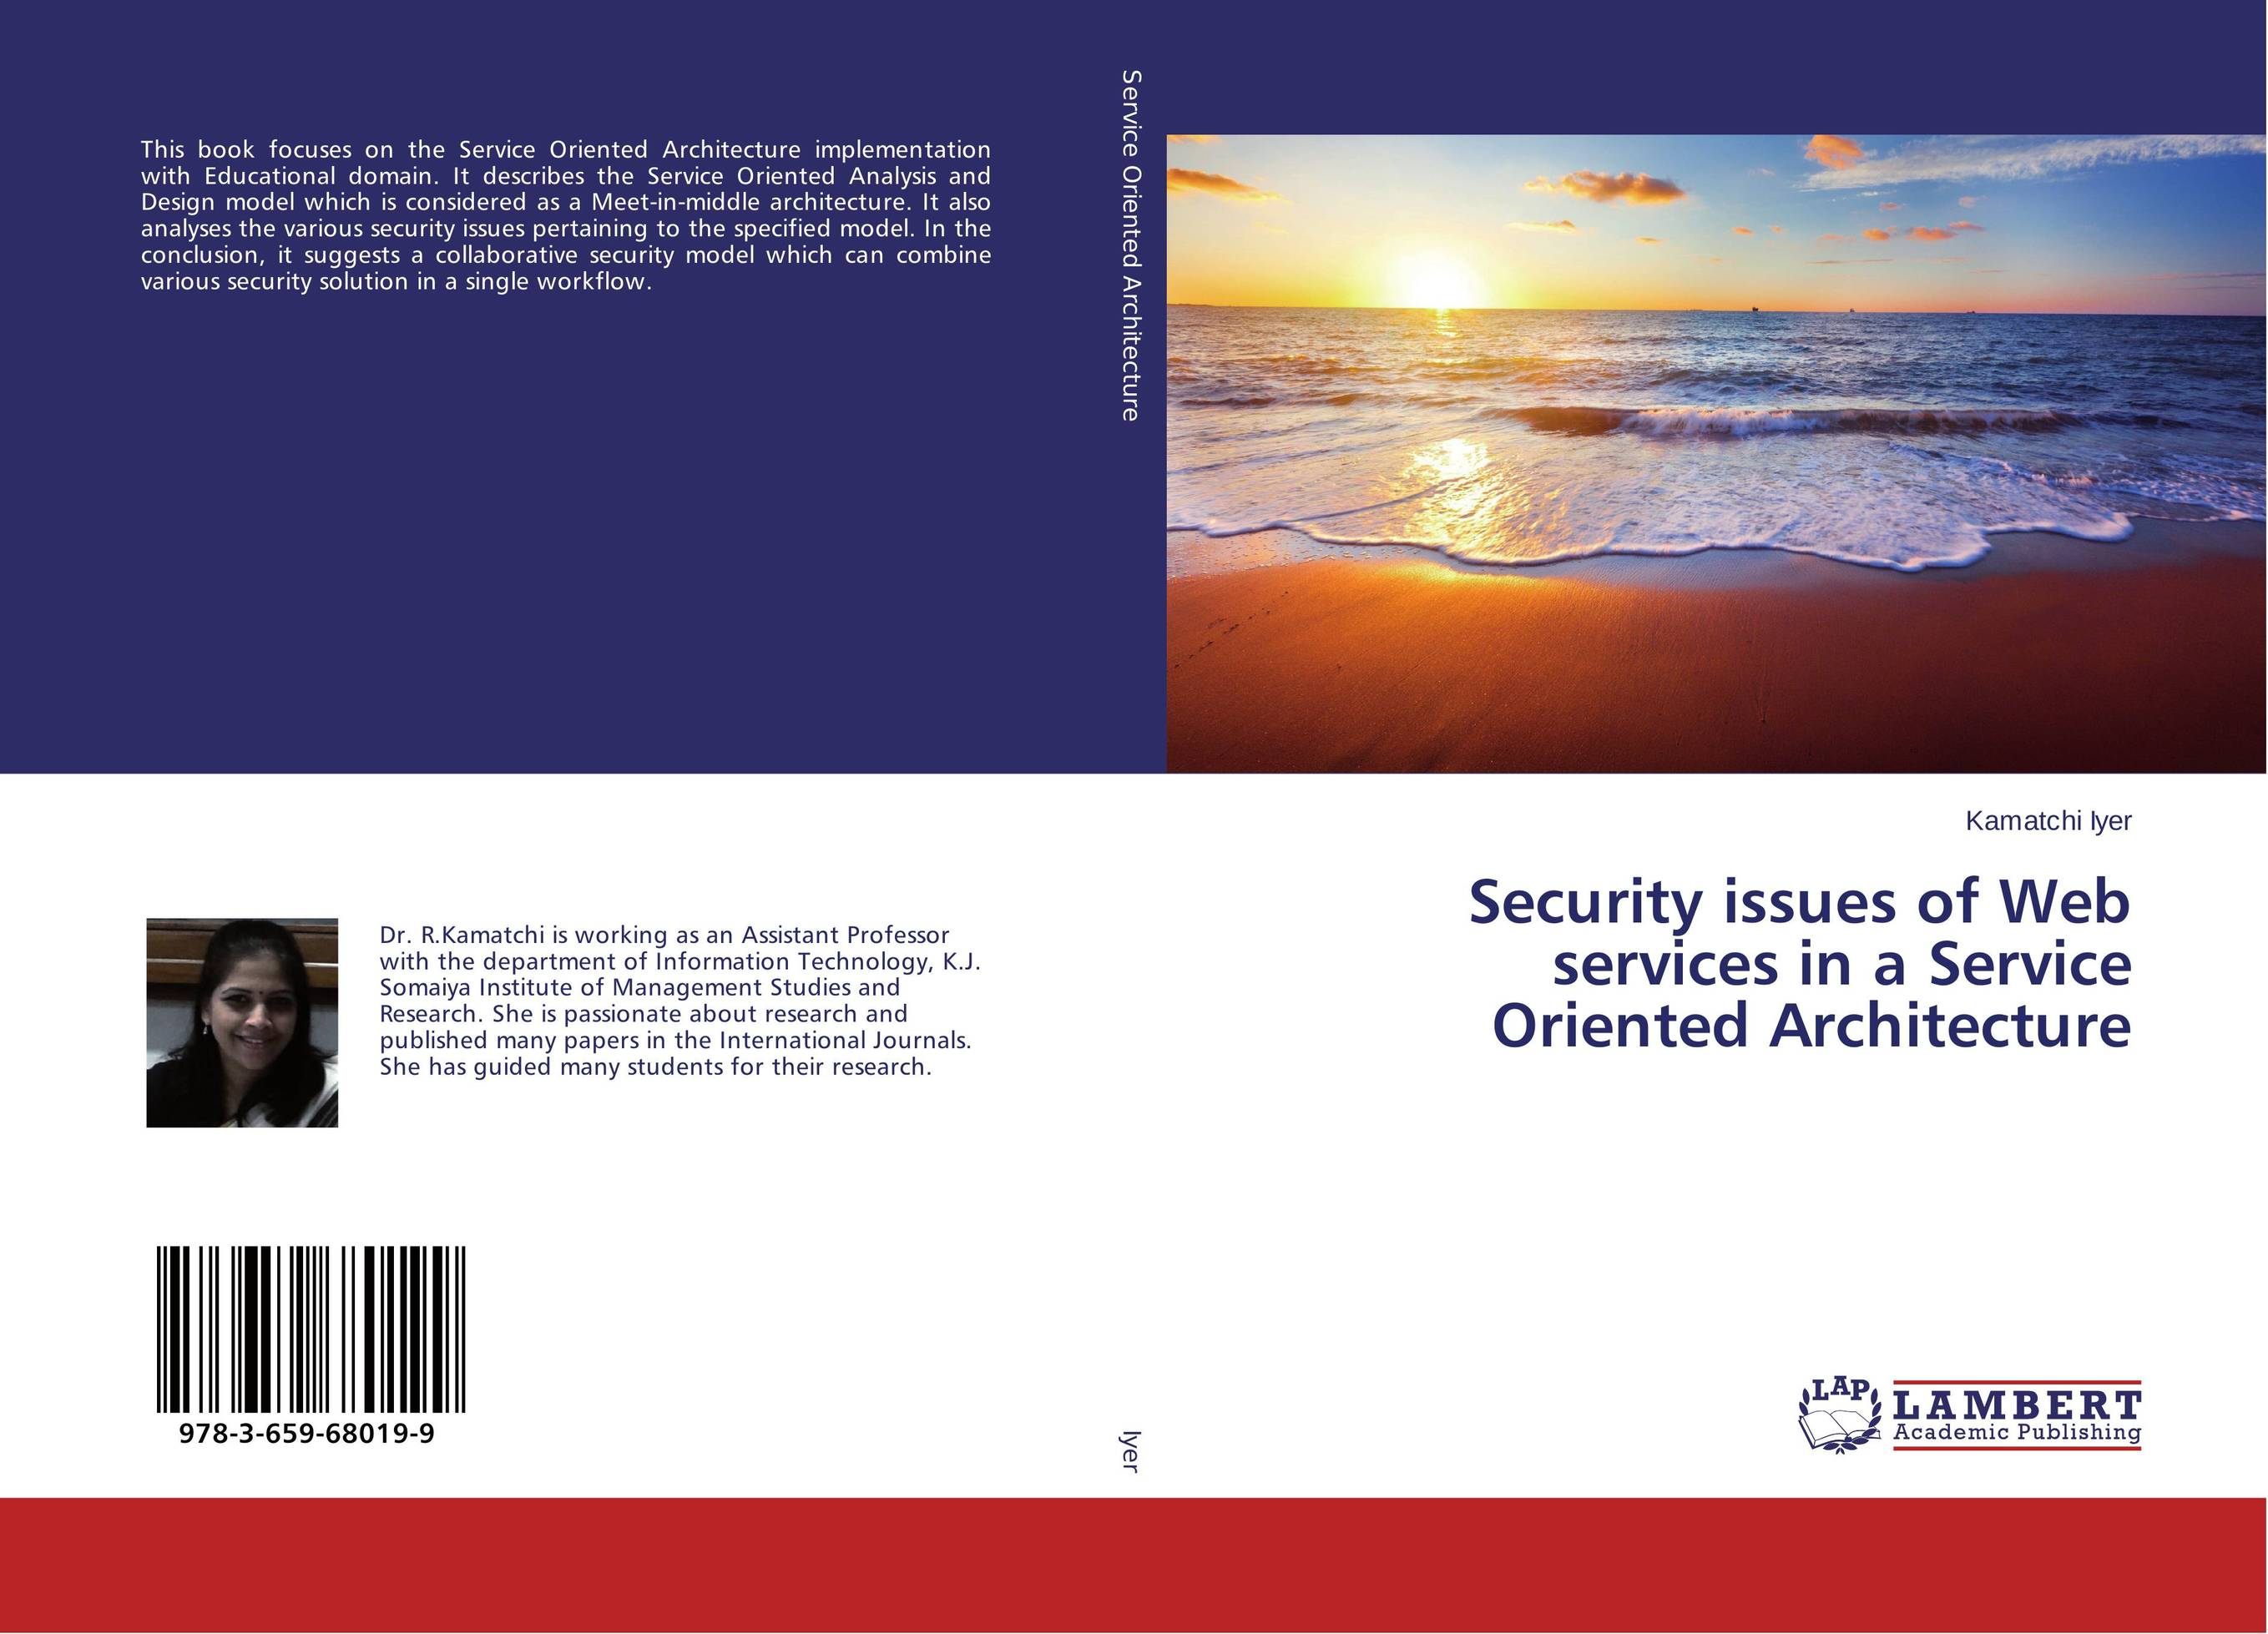 Security issues of Web services in a Service Oriented Architecture miaosen gong collaborative services in ubiquitous network